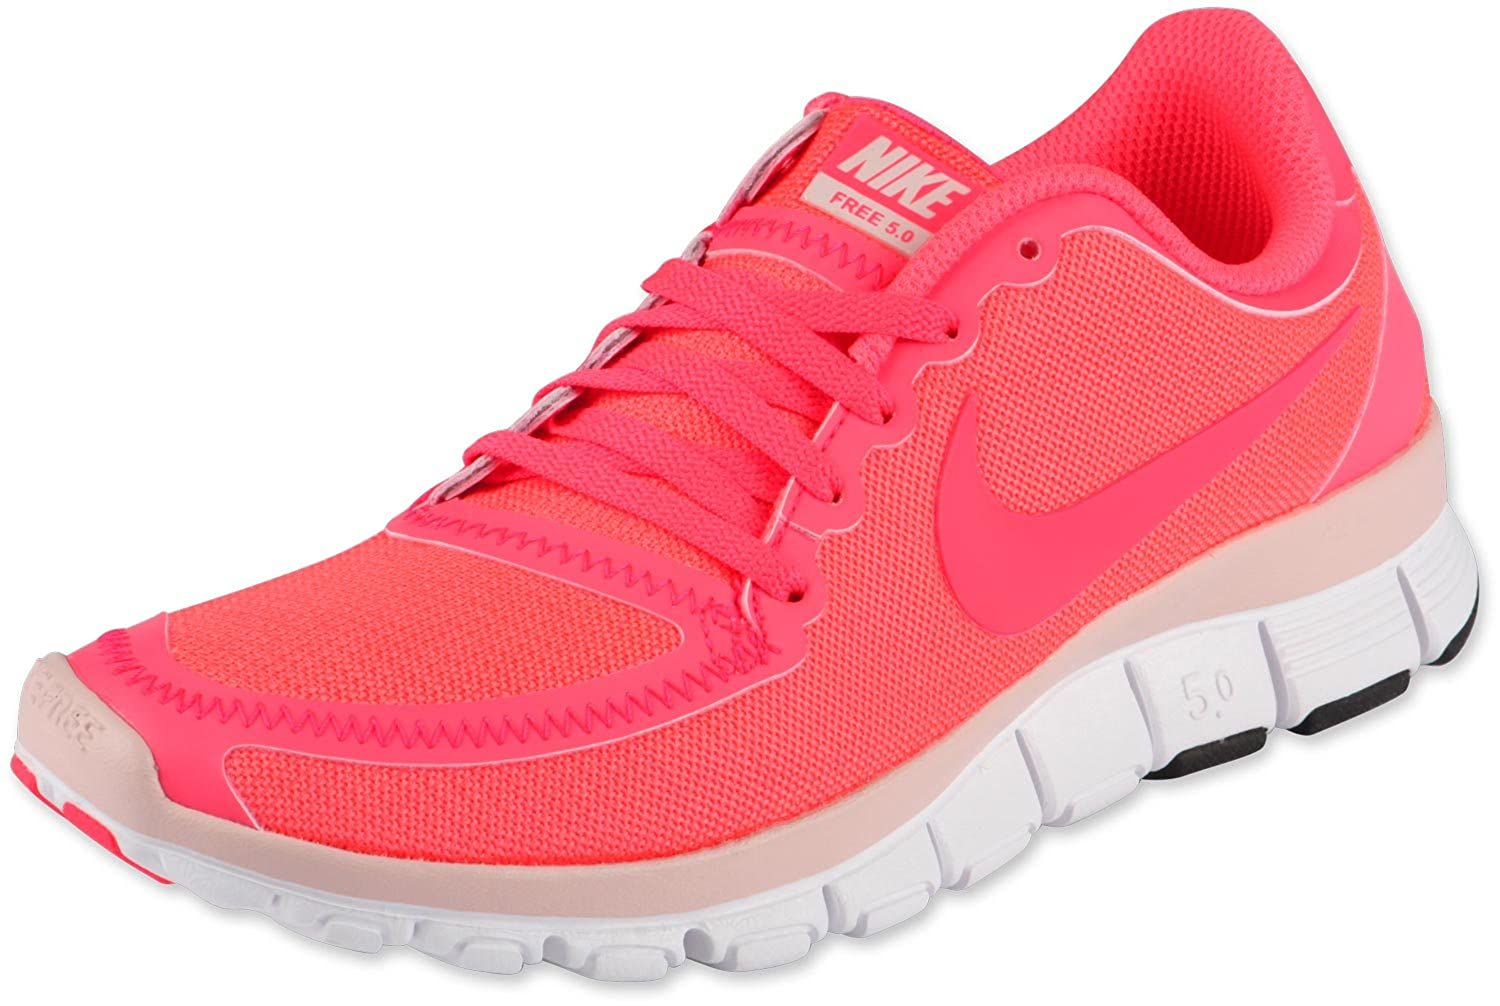 brand new 3d6c0 78f5d Amazon.com   New Womens Nike Free 5.0 V4 Running Shoes 511281-606 Hot Punch  Pink Sz 10   Running